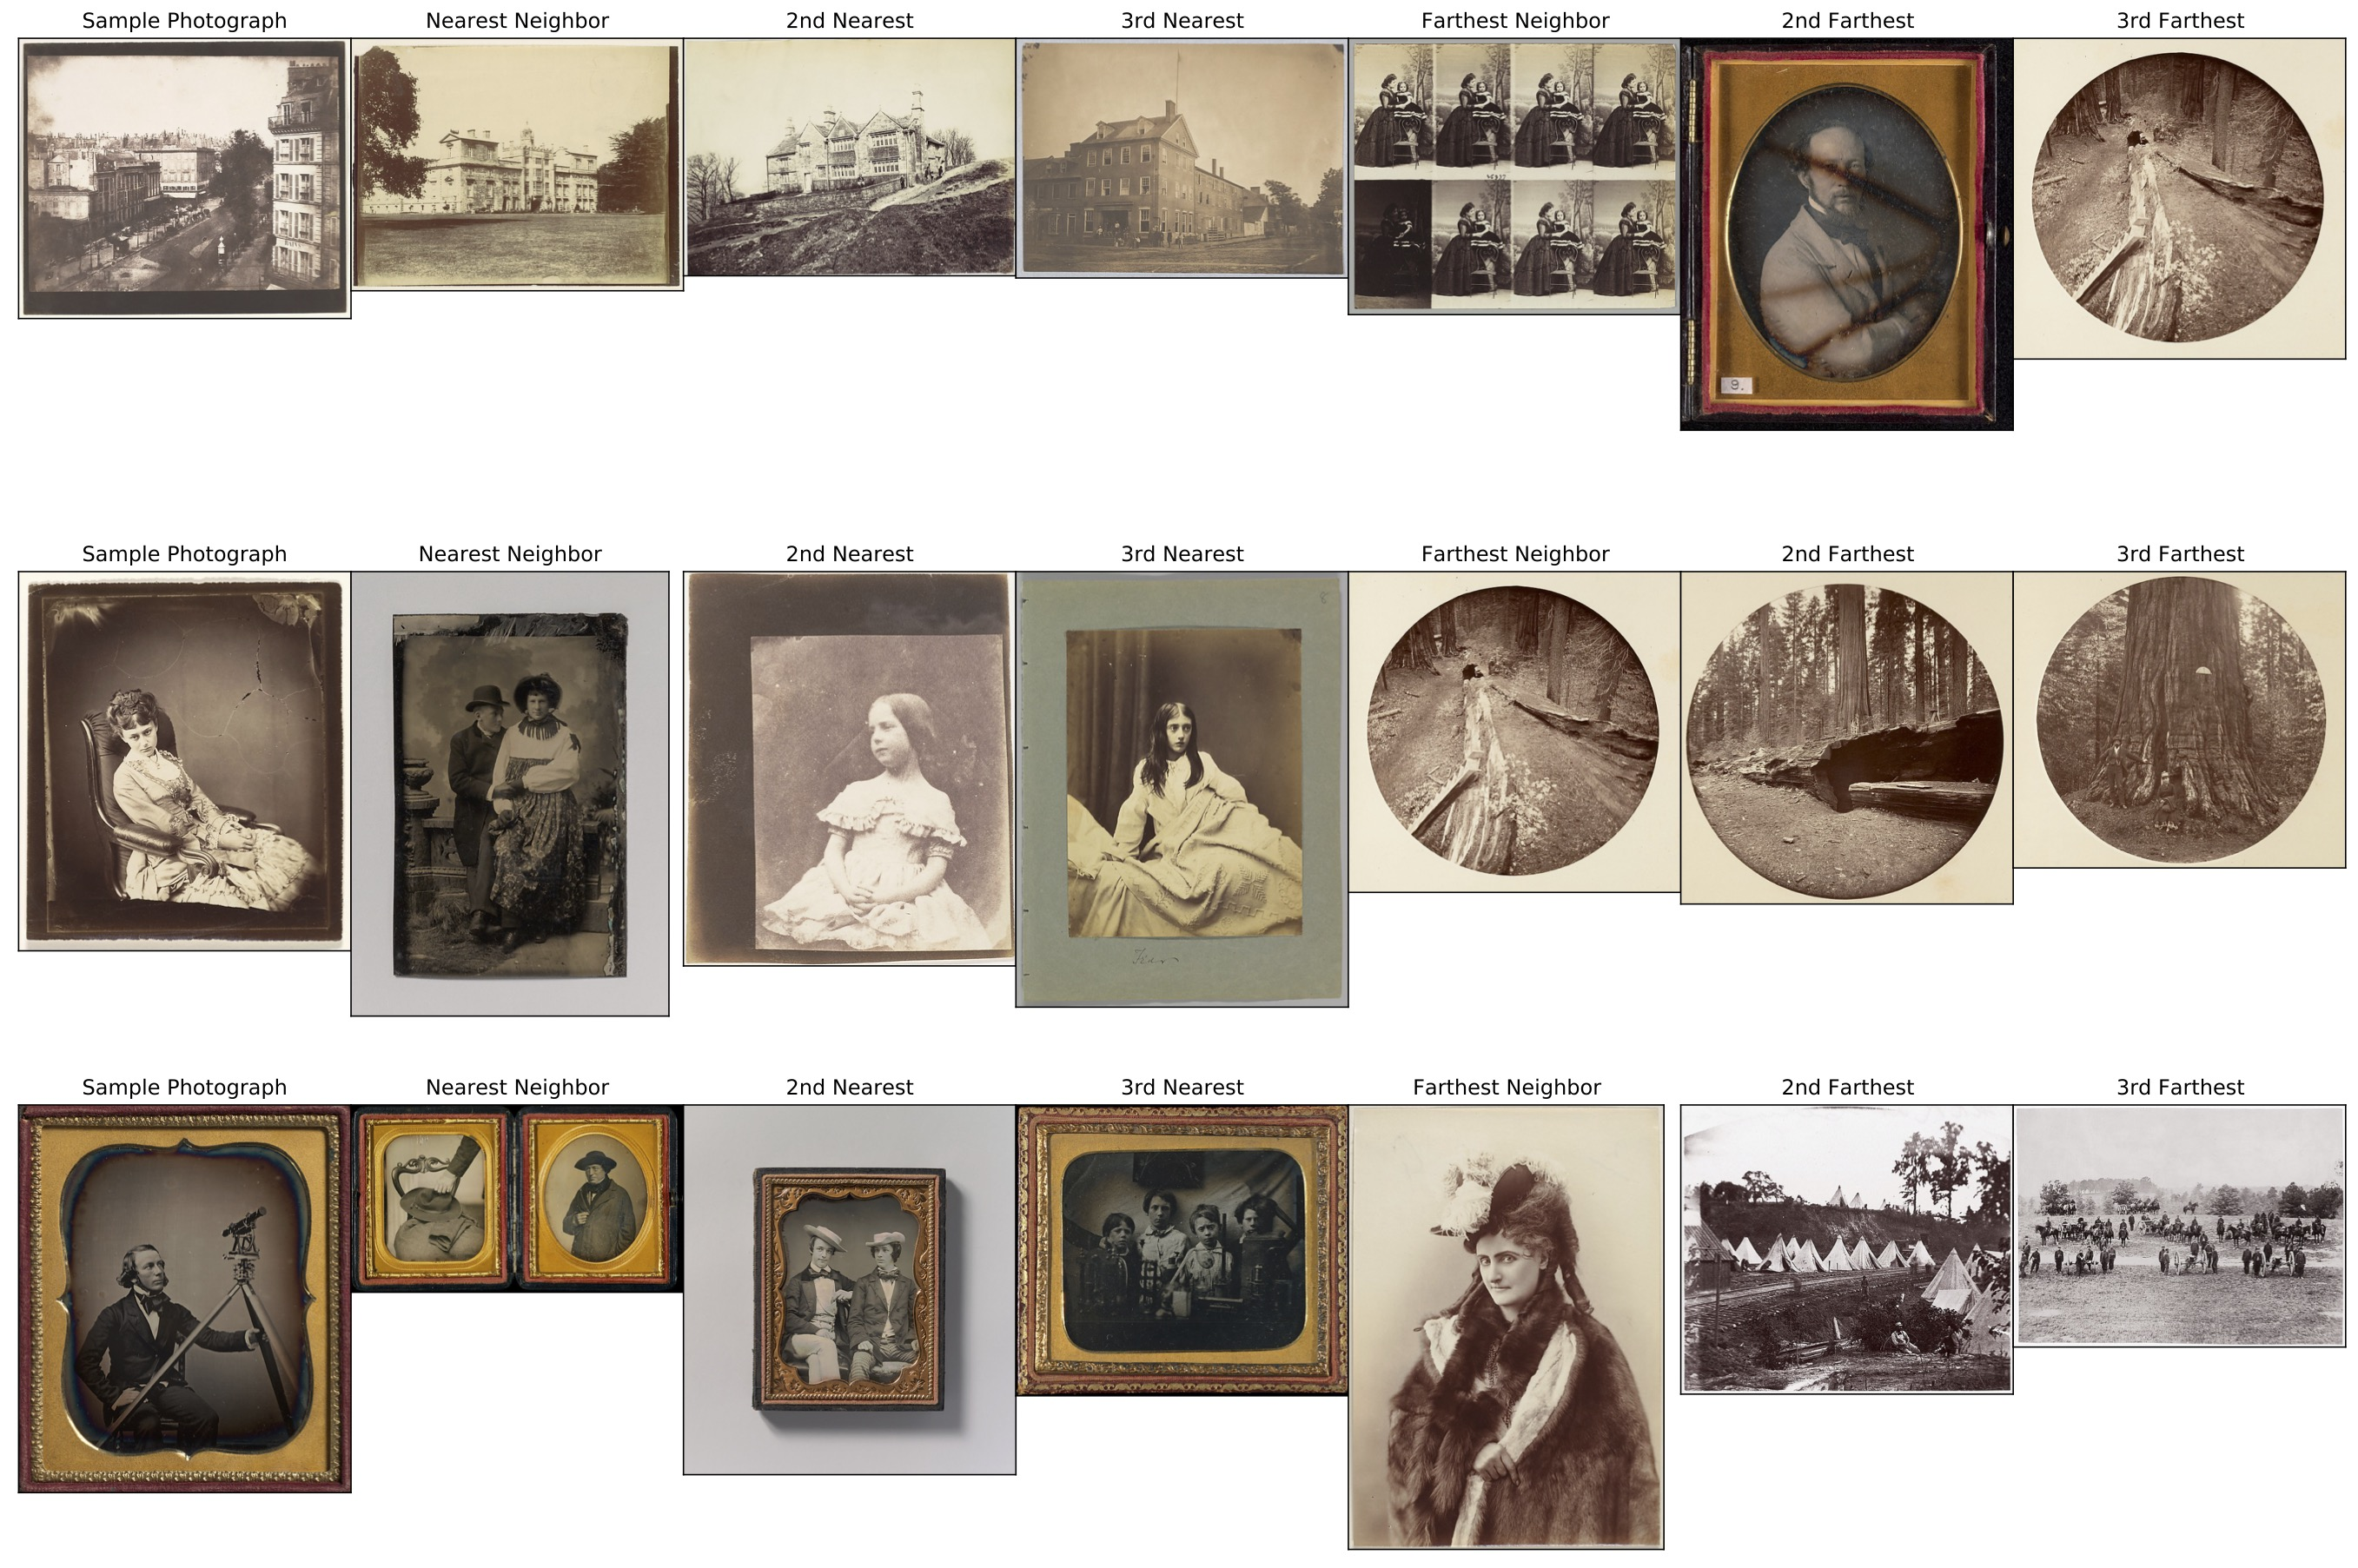 """Three rows of historic photographs, of varying sizes and subjects. Each row starts with an image labelled """"Sample Photograph"""", followed by three similar-looking images labelled """"Nearest Neighbor,"""" """"2nd Nearest,"""" and """"3rd Nearest."""" Then, the row finishes with three dissimilar-looking images labelled """"Farthest Neighbor,"""" """"2nd Farthest,"""" and """"3rd Farthest."""""""